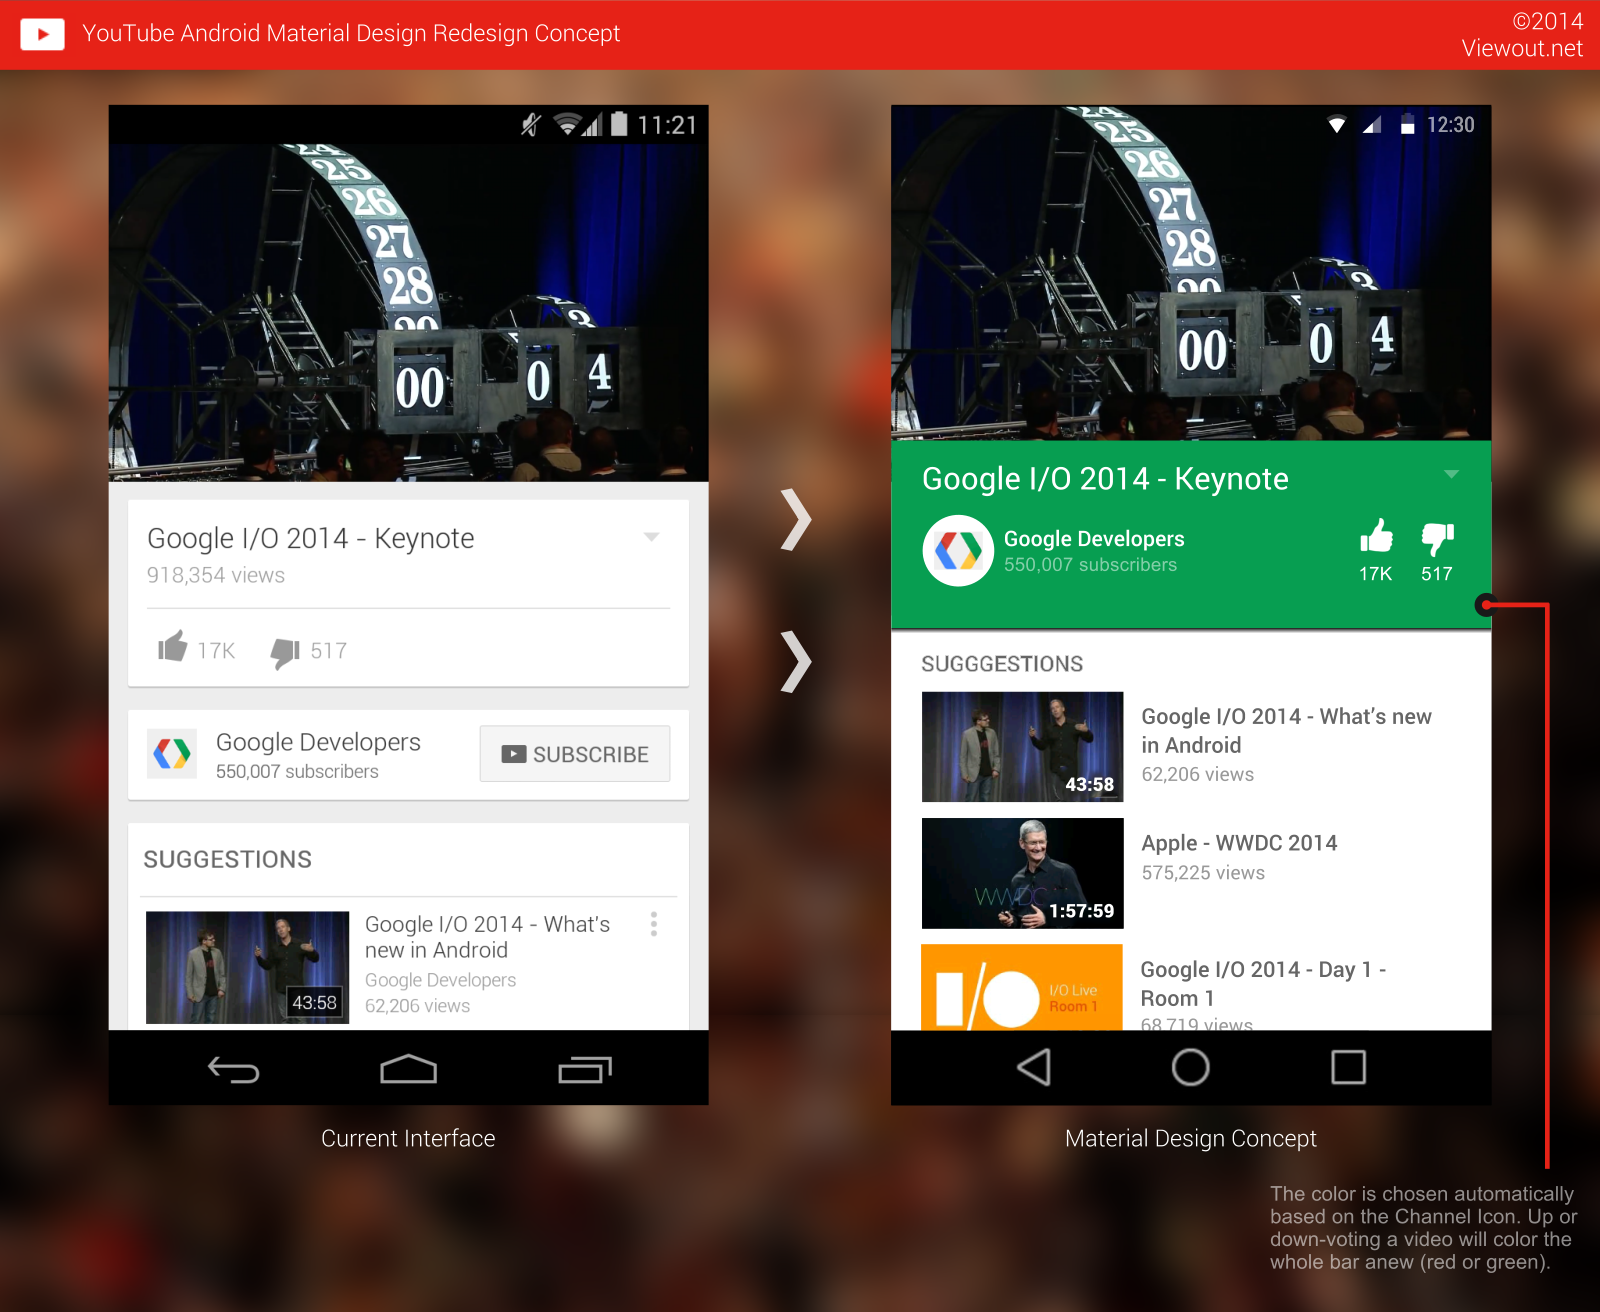 Youtube Android Material Design Redesign Concept Viewout